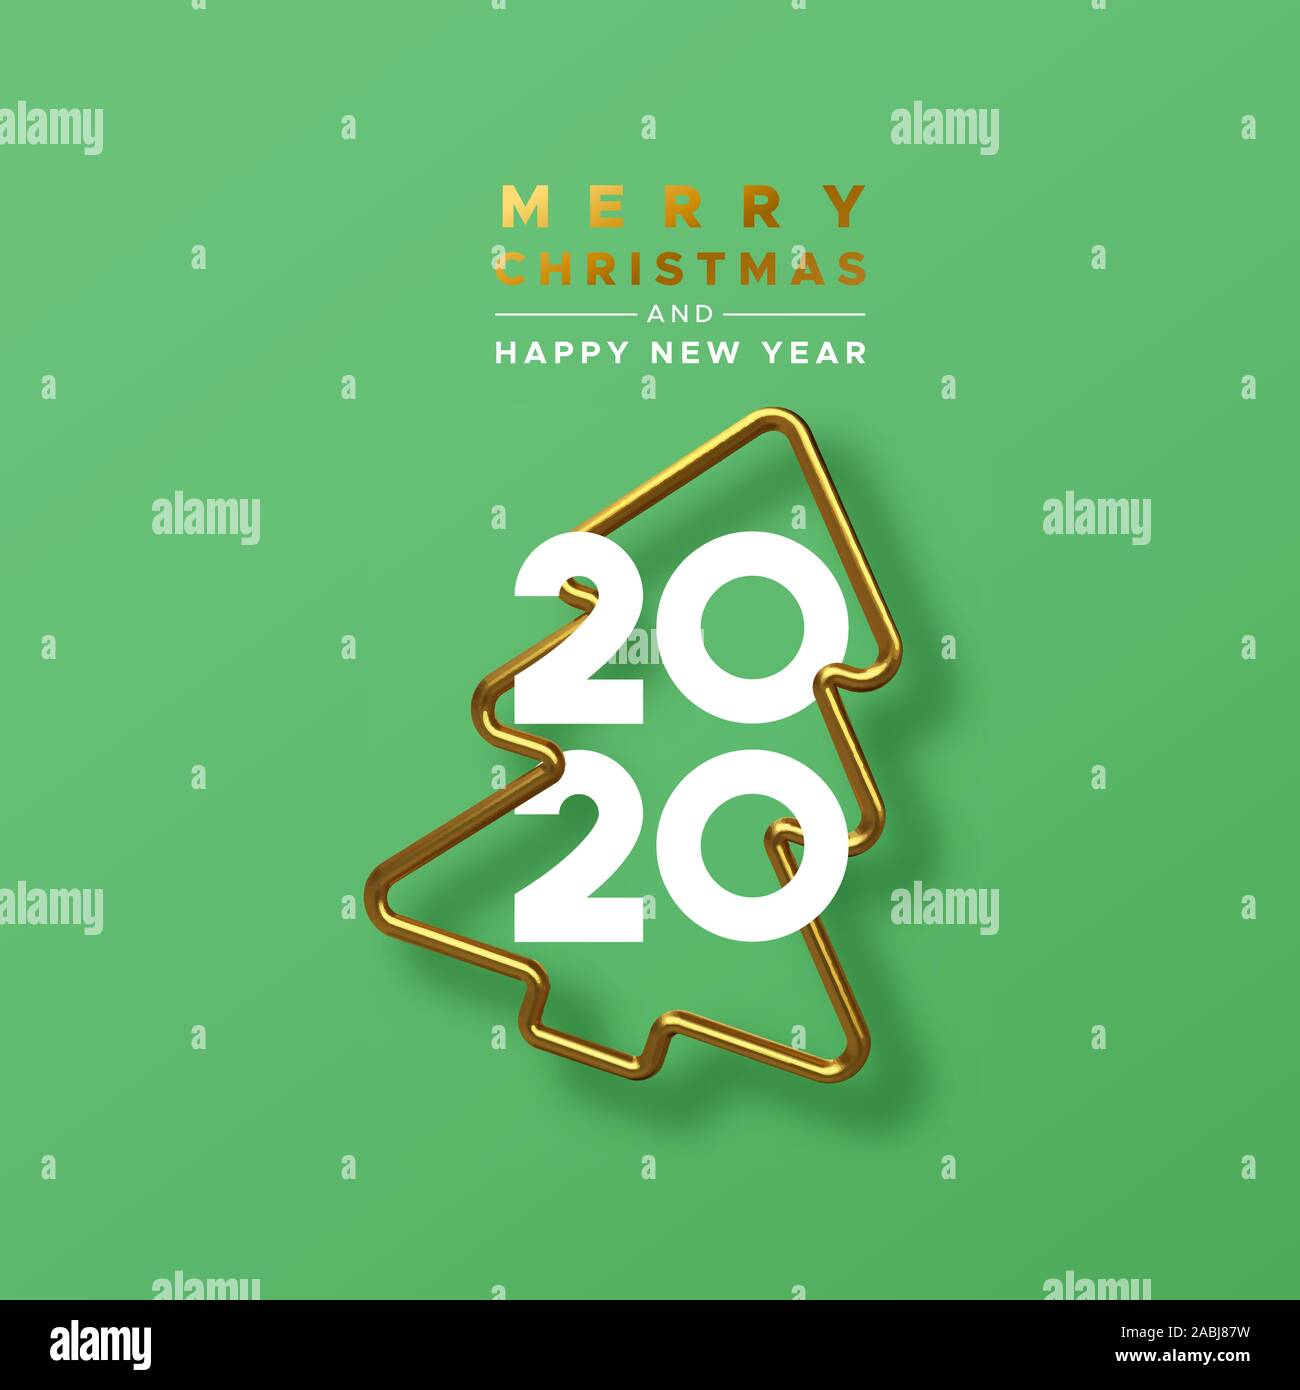 Christmas Card Mailing Dates 2020 Merry Christmas Happy New Year 2020 greeting card of realistic 3d